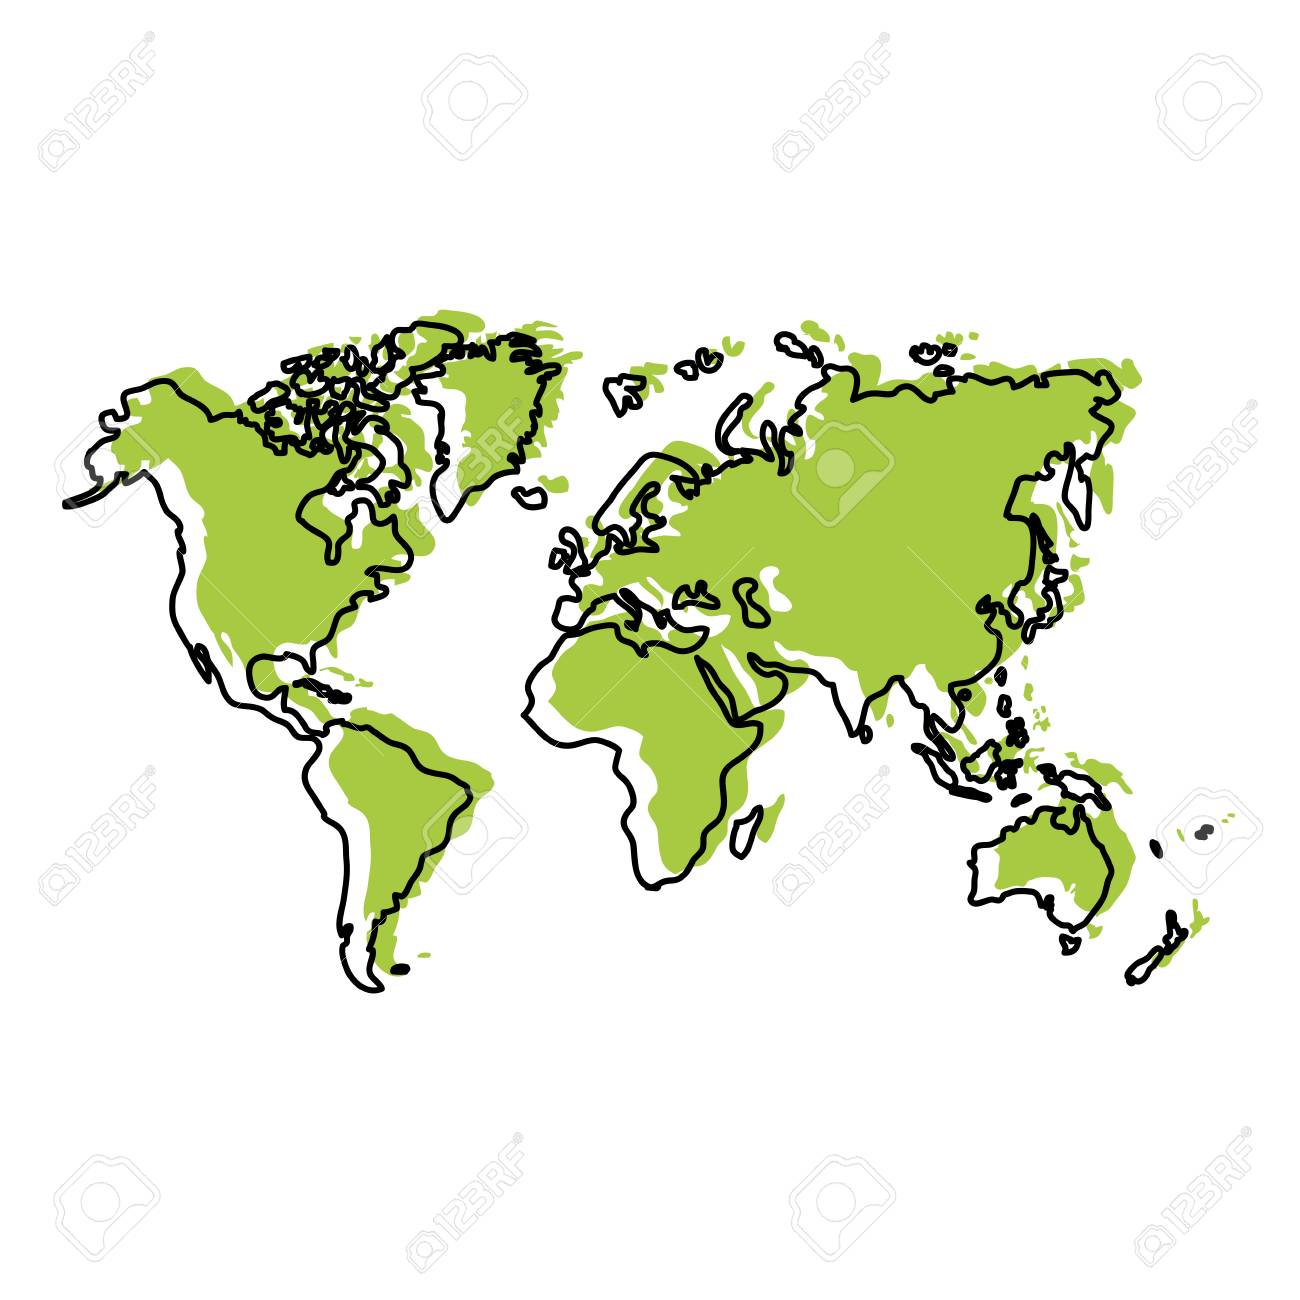 moved color global geography map with continents world vector..